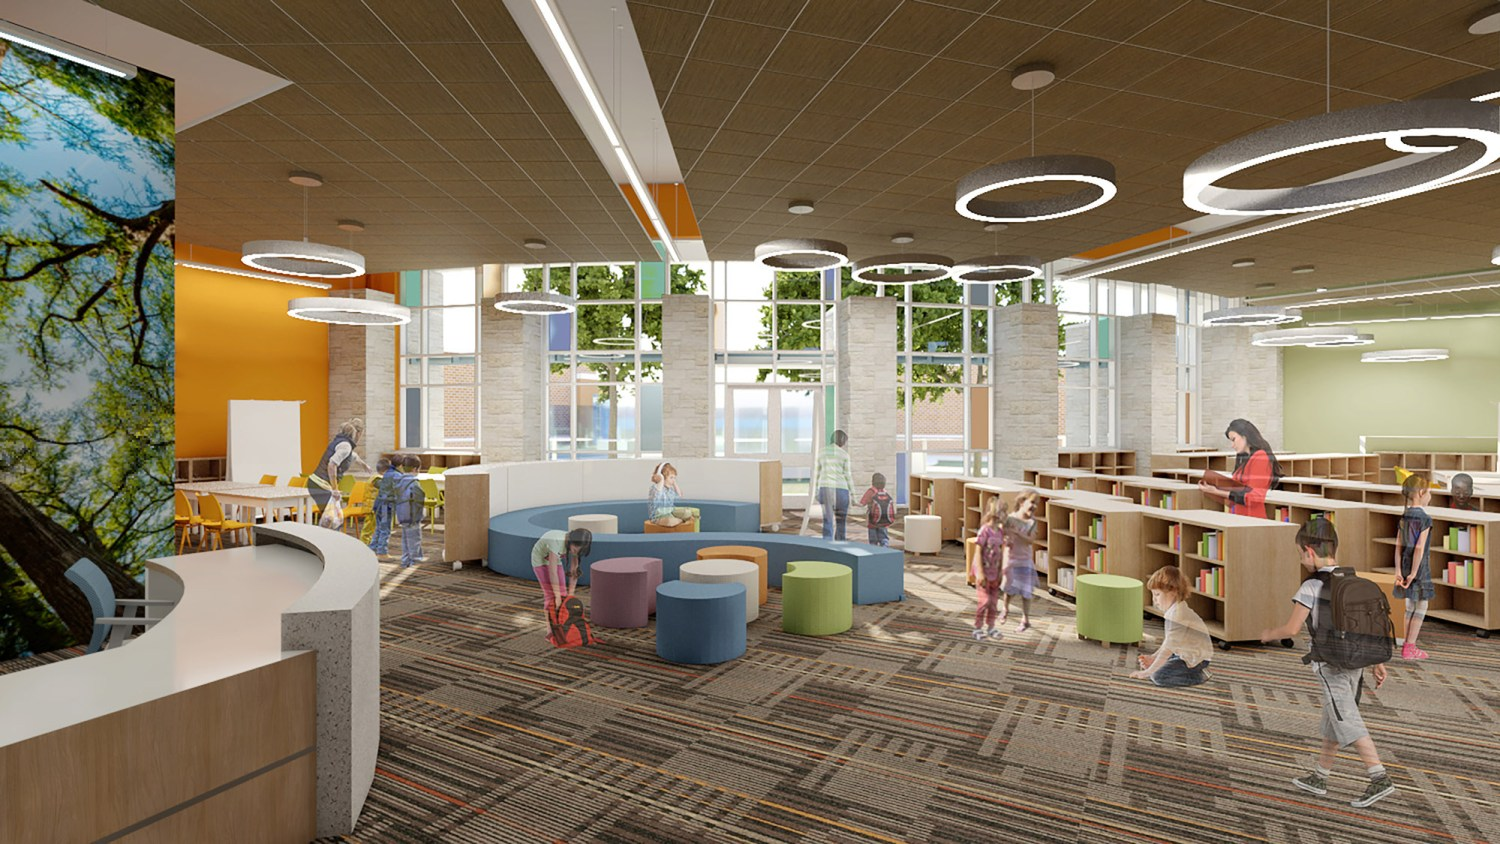 Texas City Elementary Schools - Library